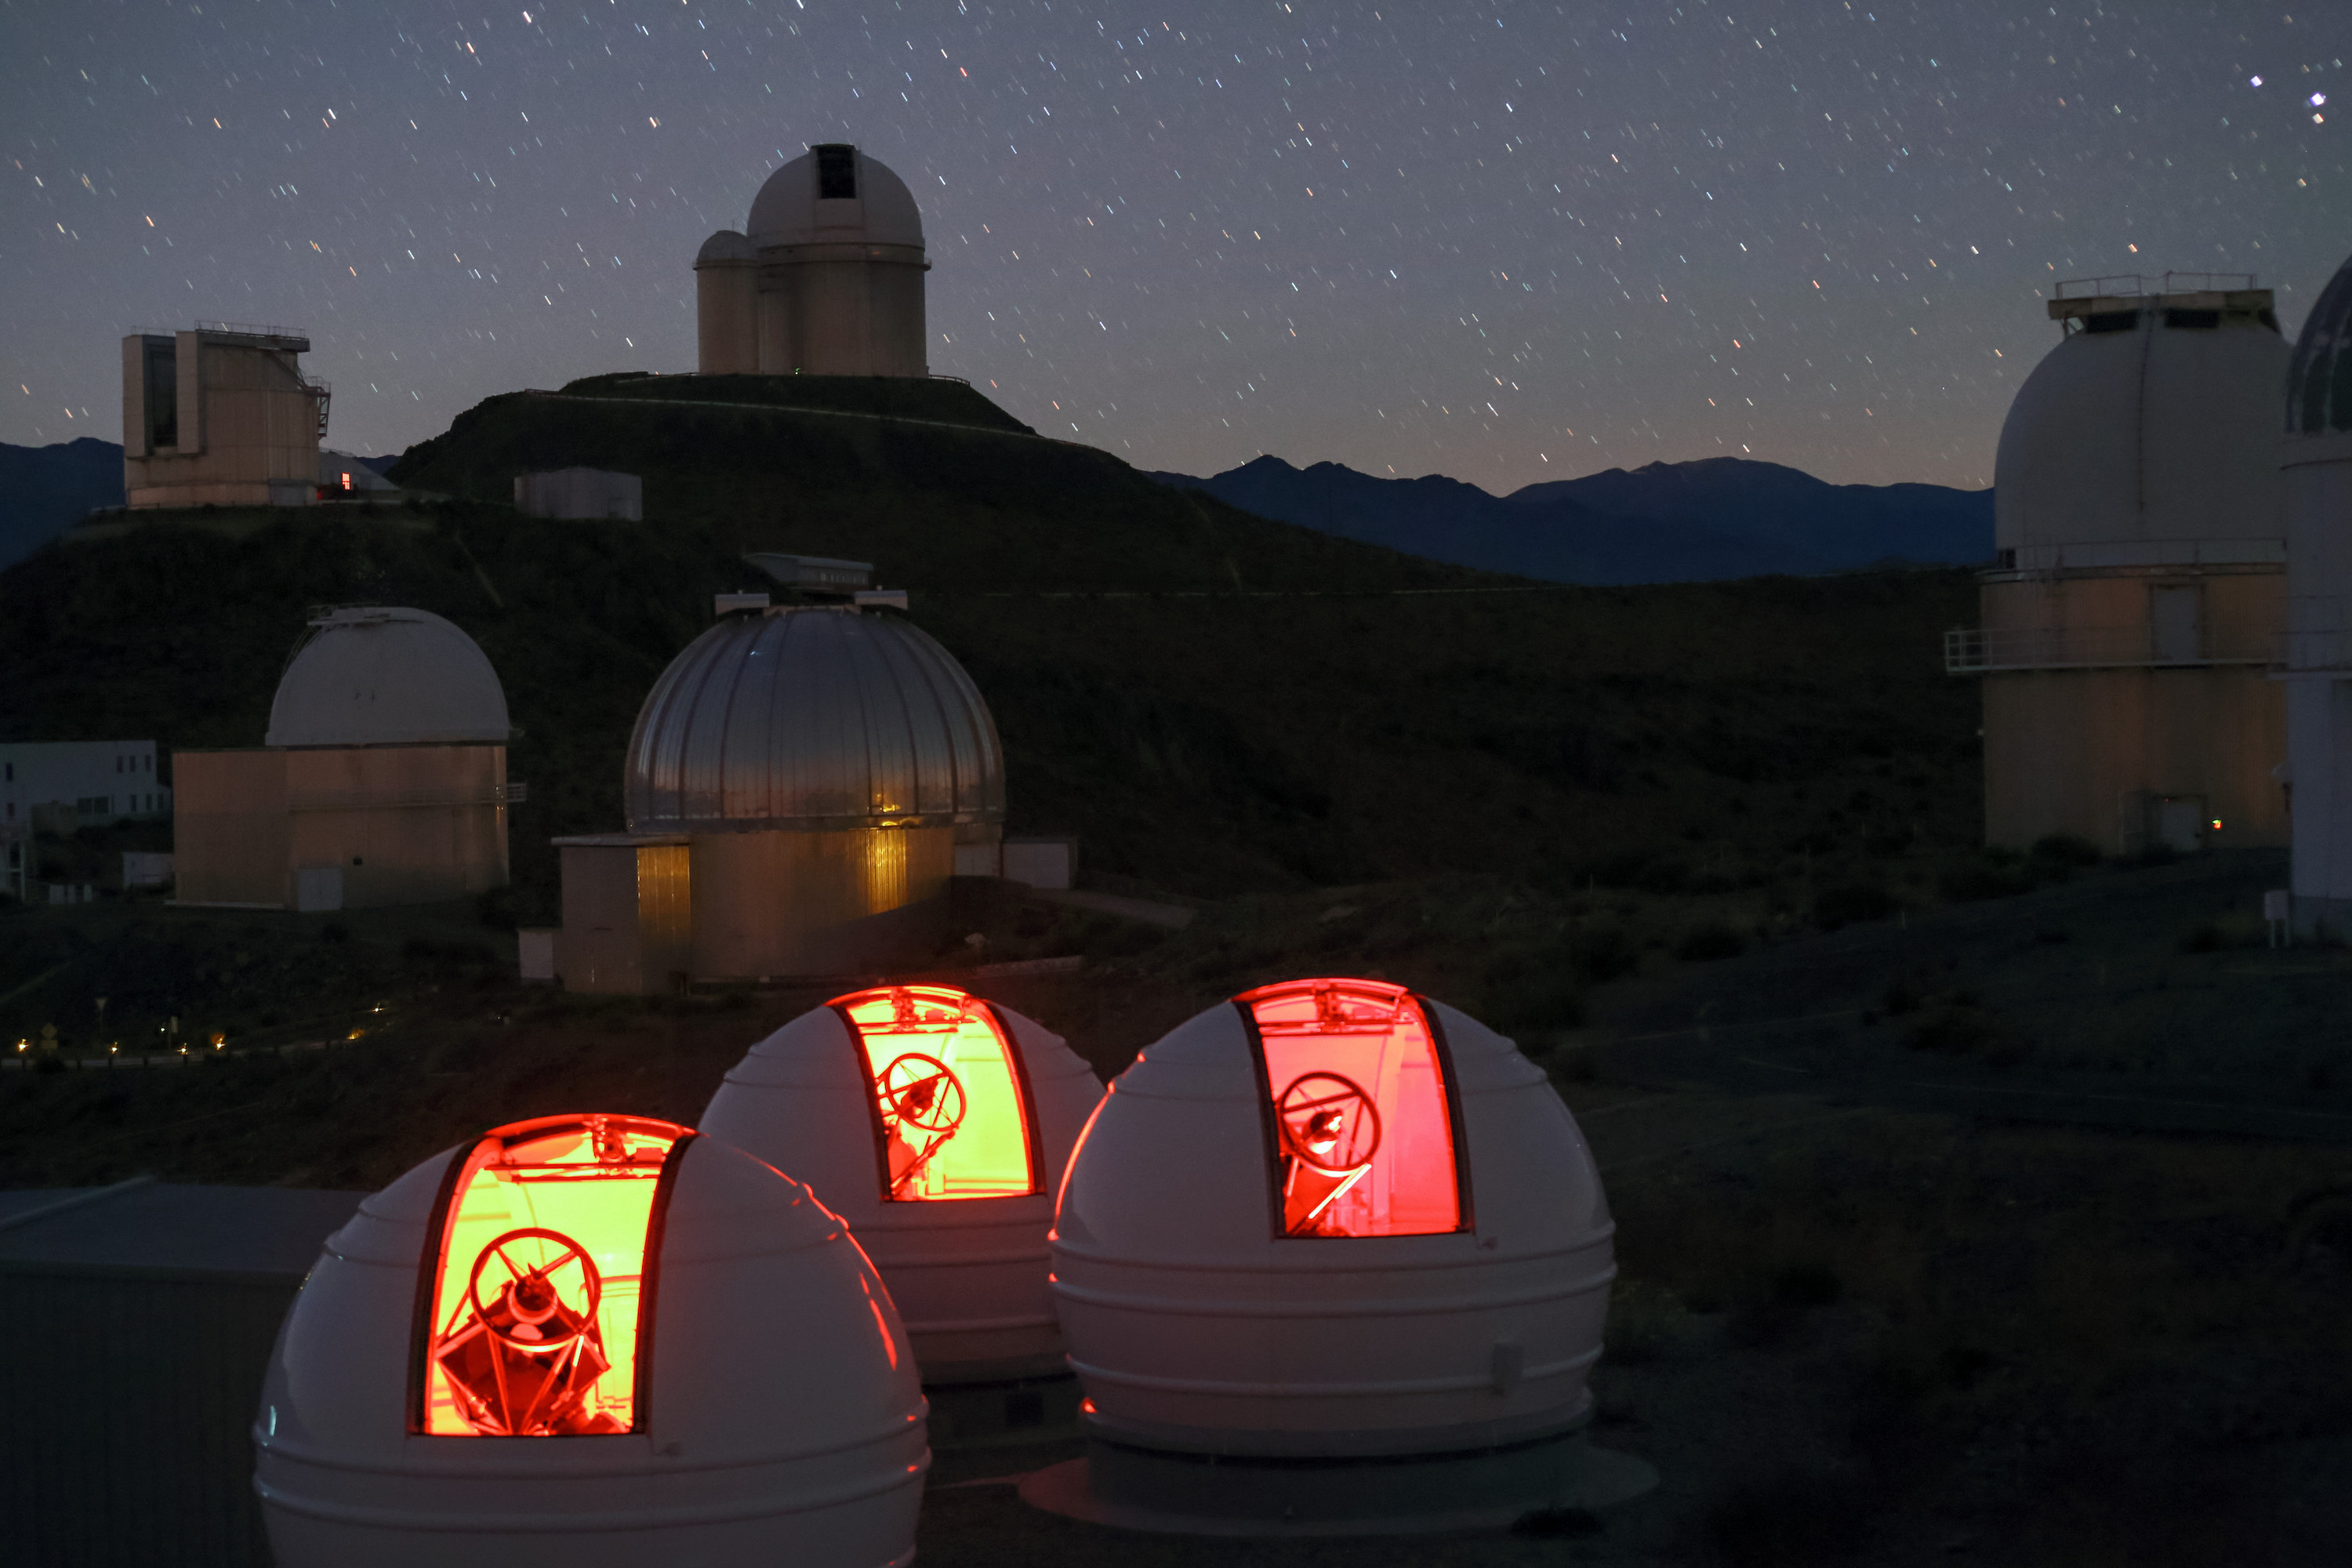 The ExTrA telescopes at La Silla, Chile